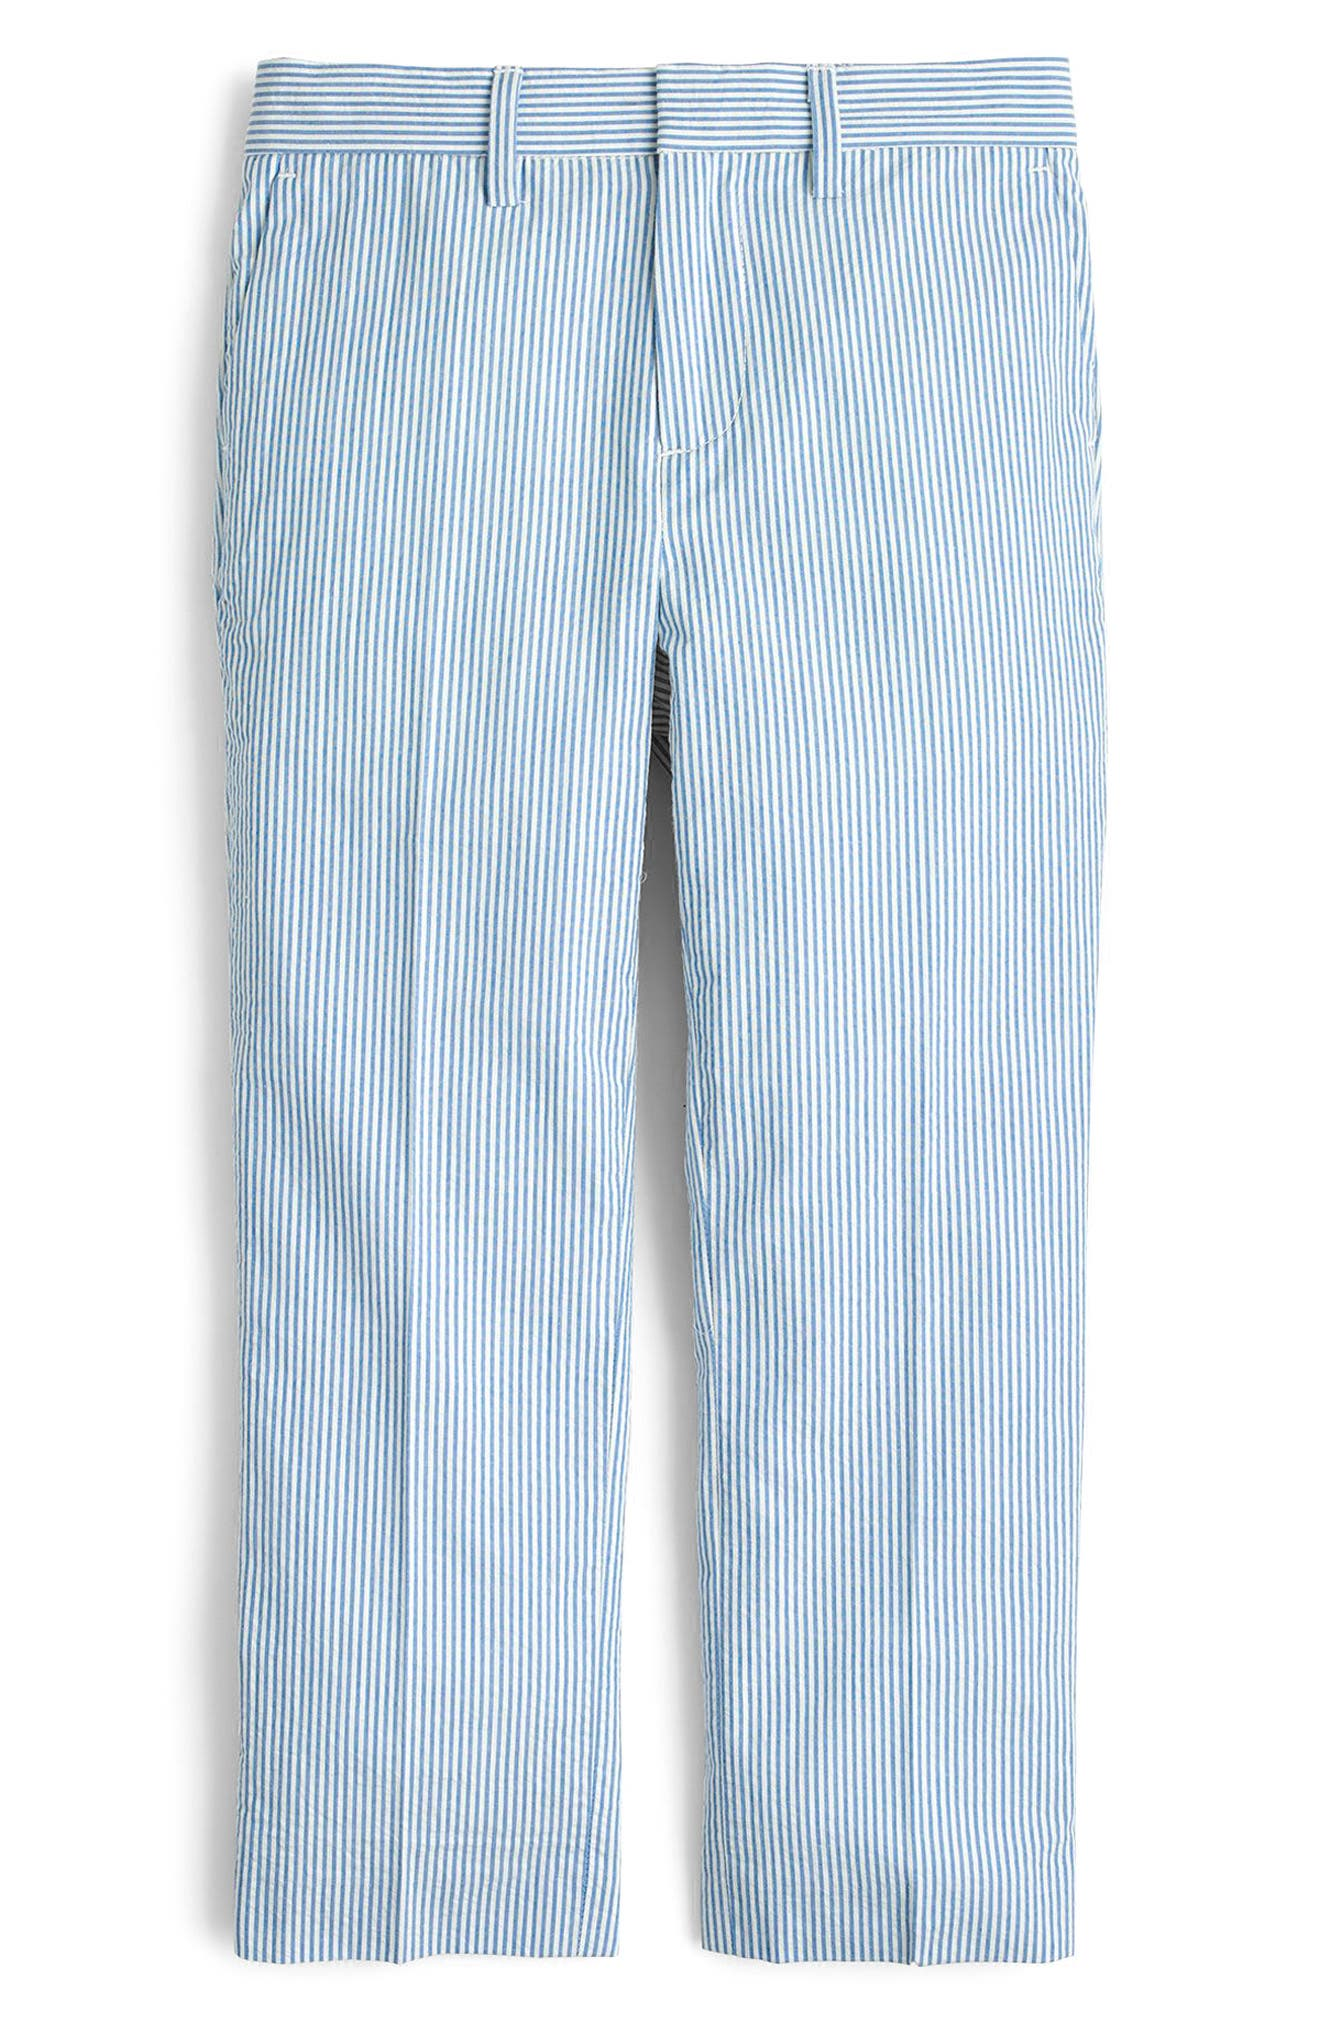 Ludlow Seersucker Pants,                         Main,                         color, Crisp Azure White